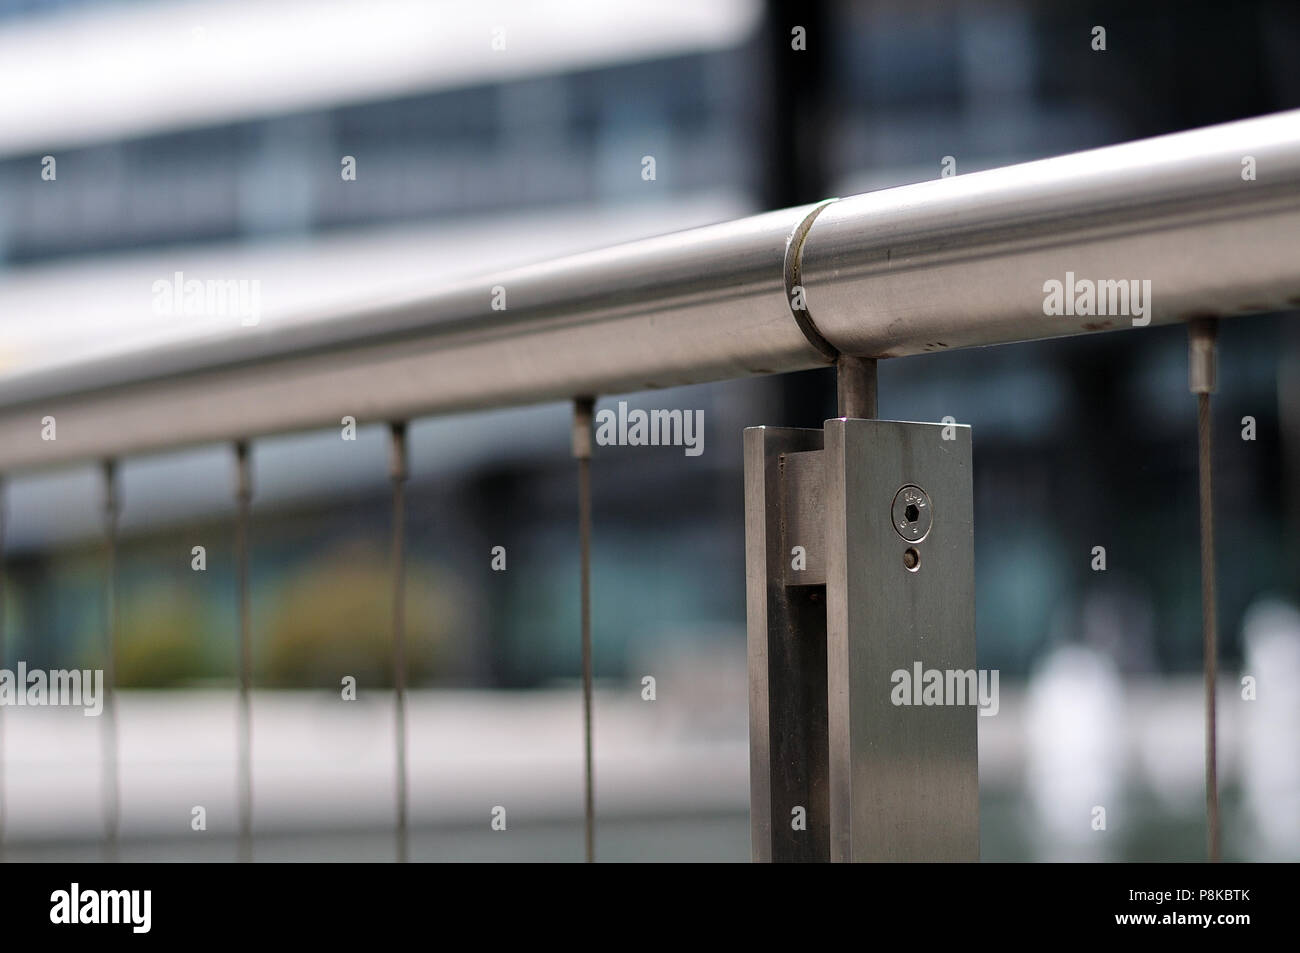 close-up of handrail of a bannister constructed with stainless steel ...